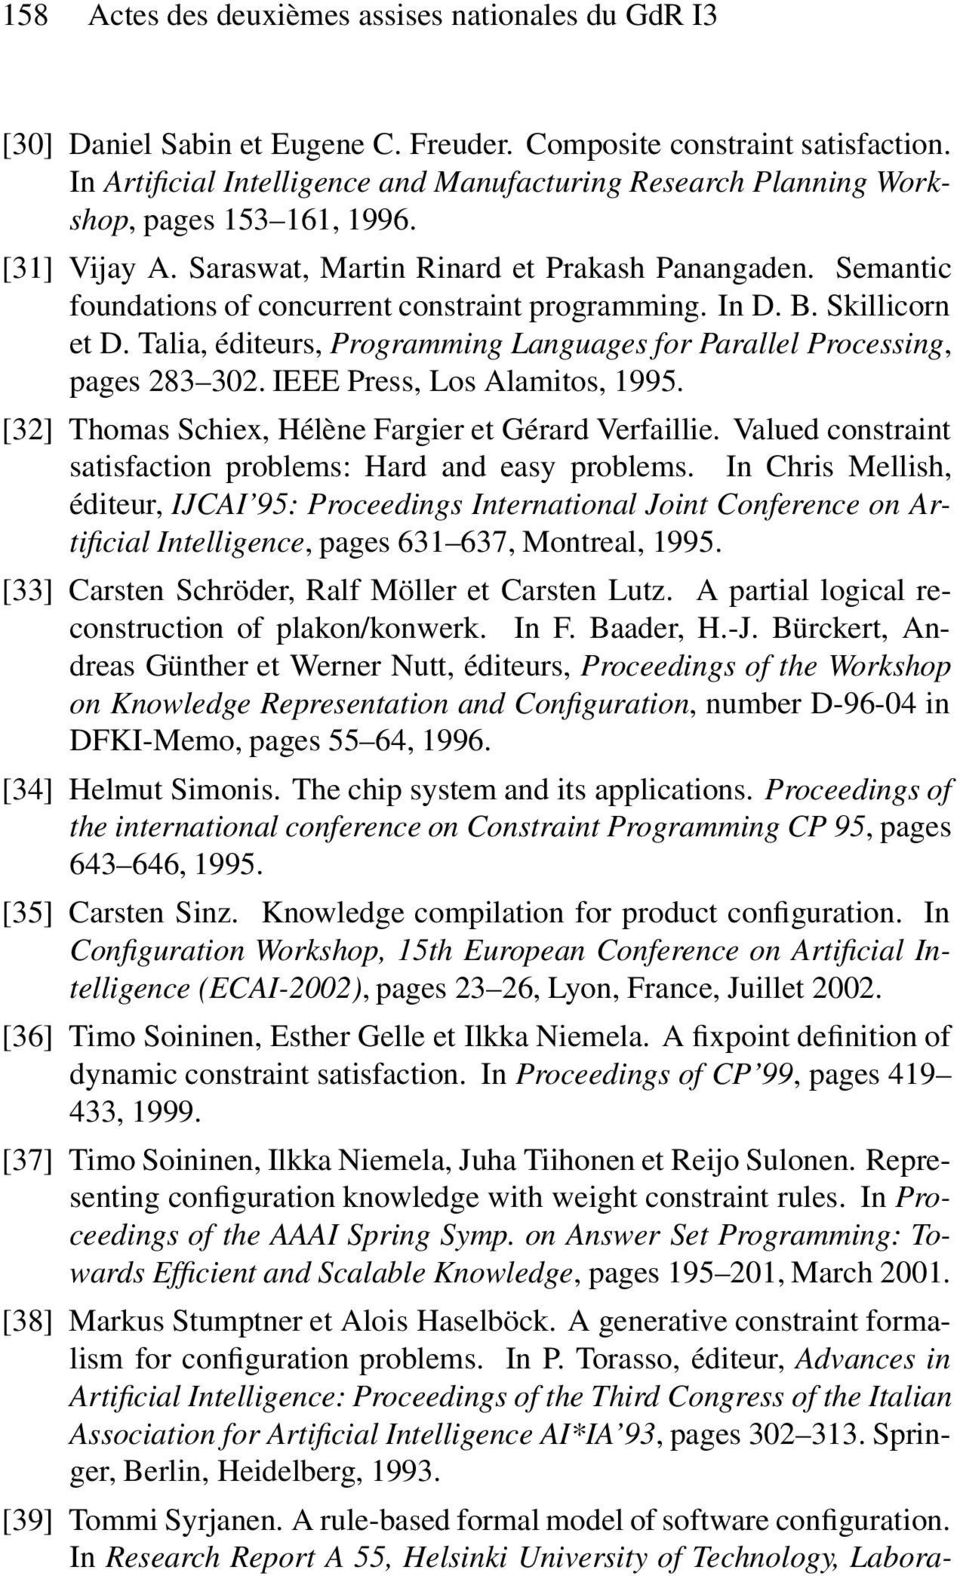 Semantic foundations of concurrent constraint programming. In D. B. Skillicorn et D. Talia, éditeurs, Programming Languages for Parallel Processing, pages 283 302. IEEE Press, Los Alamitos, 1995.